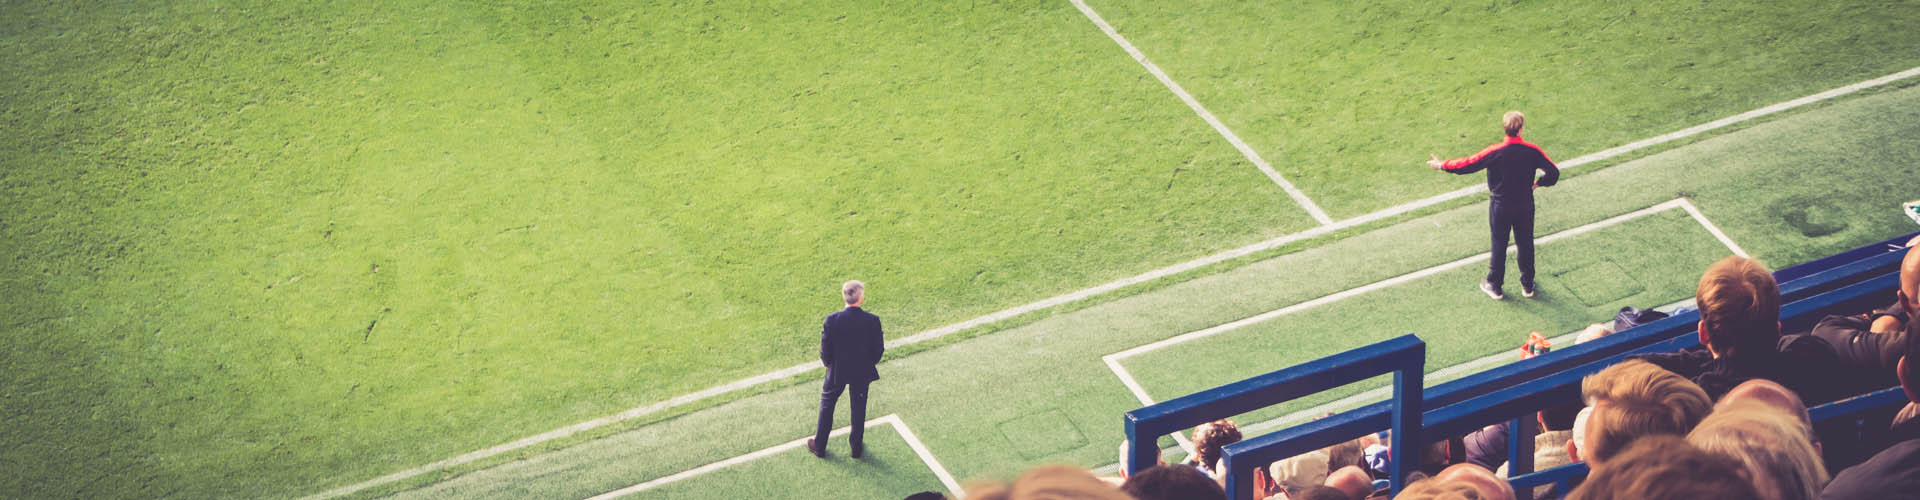 Special One vs Normal One